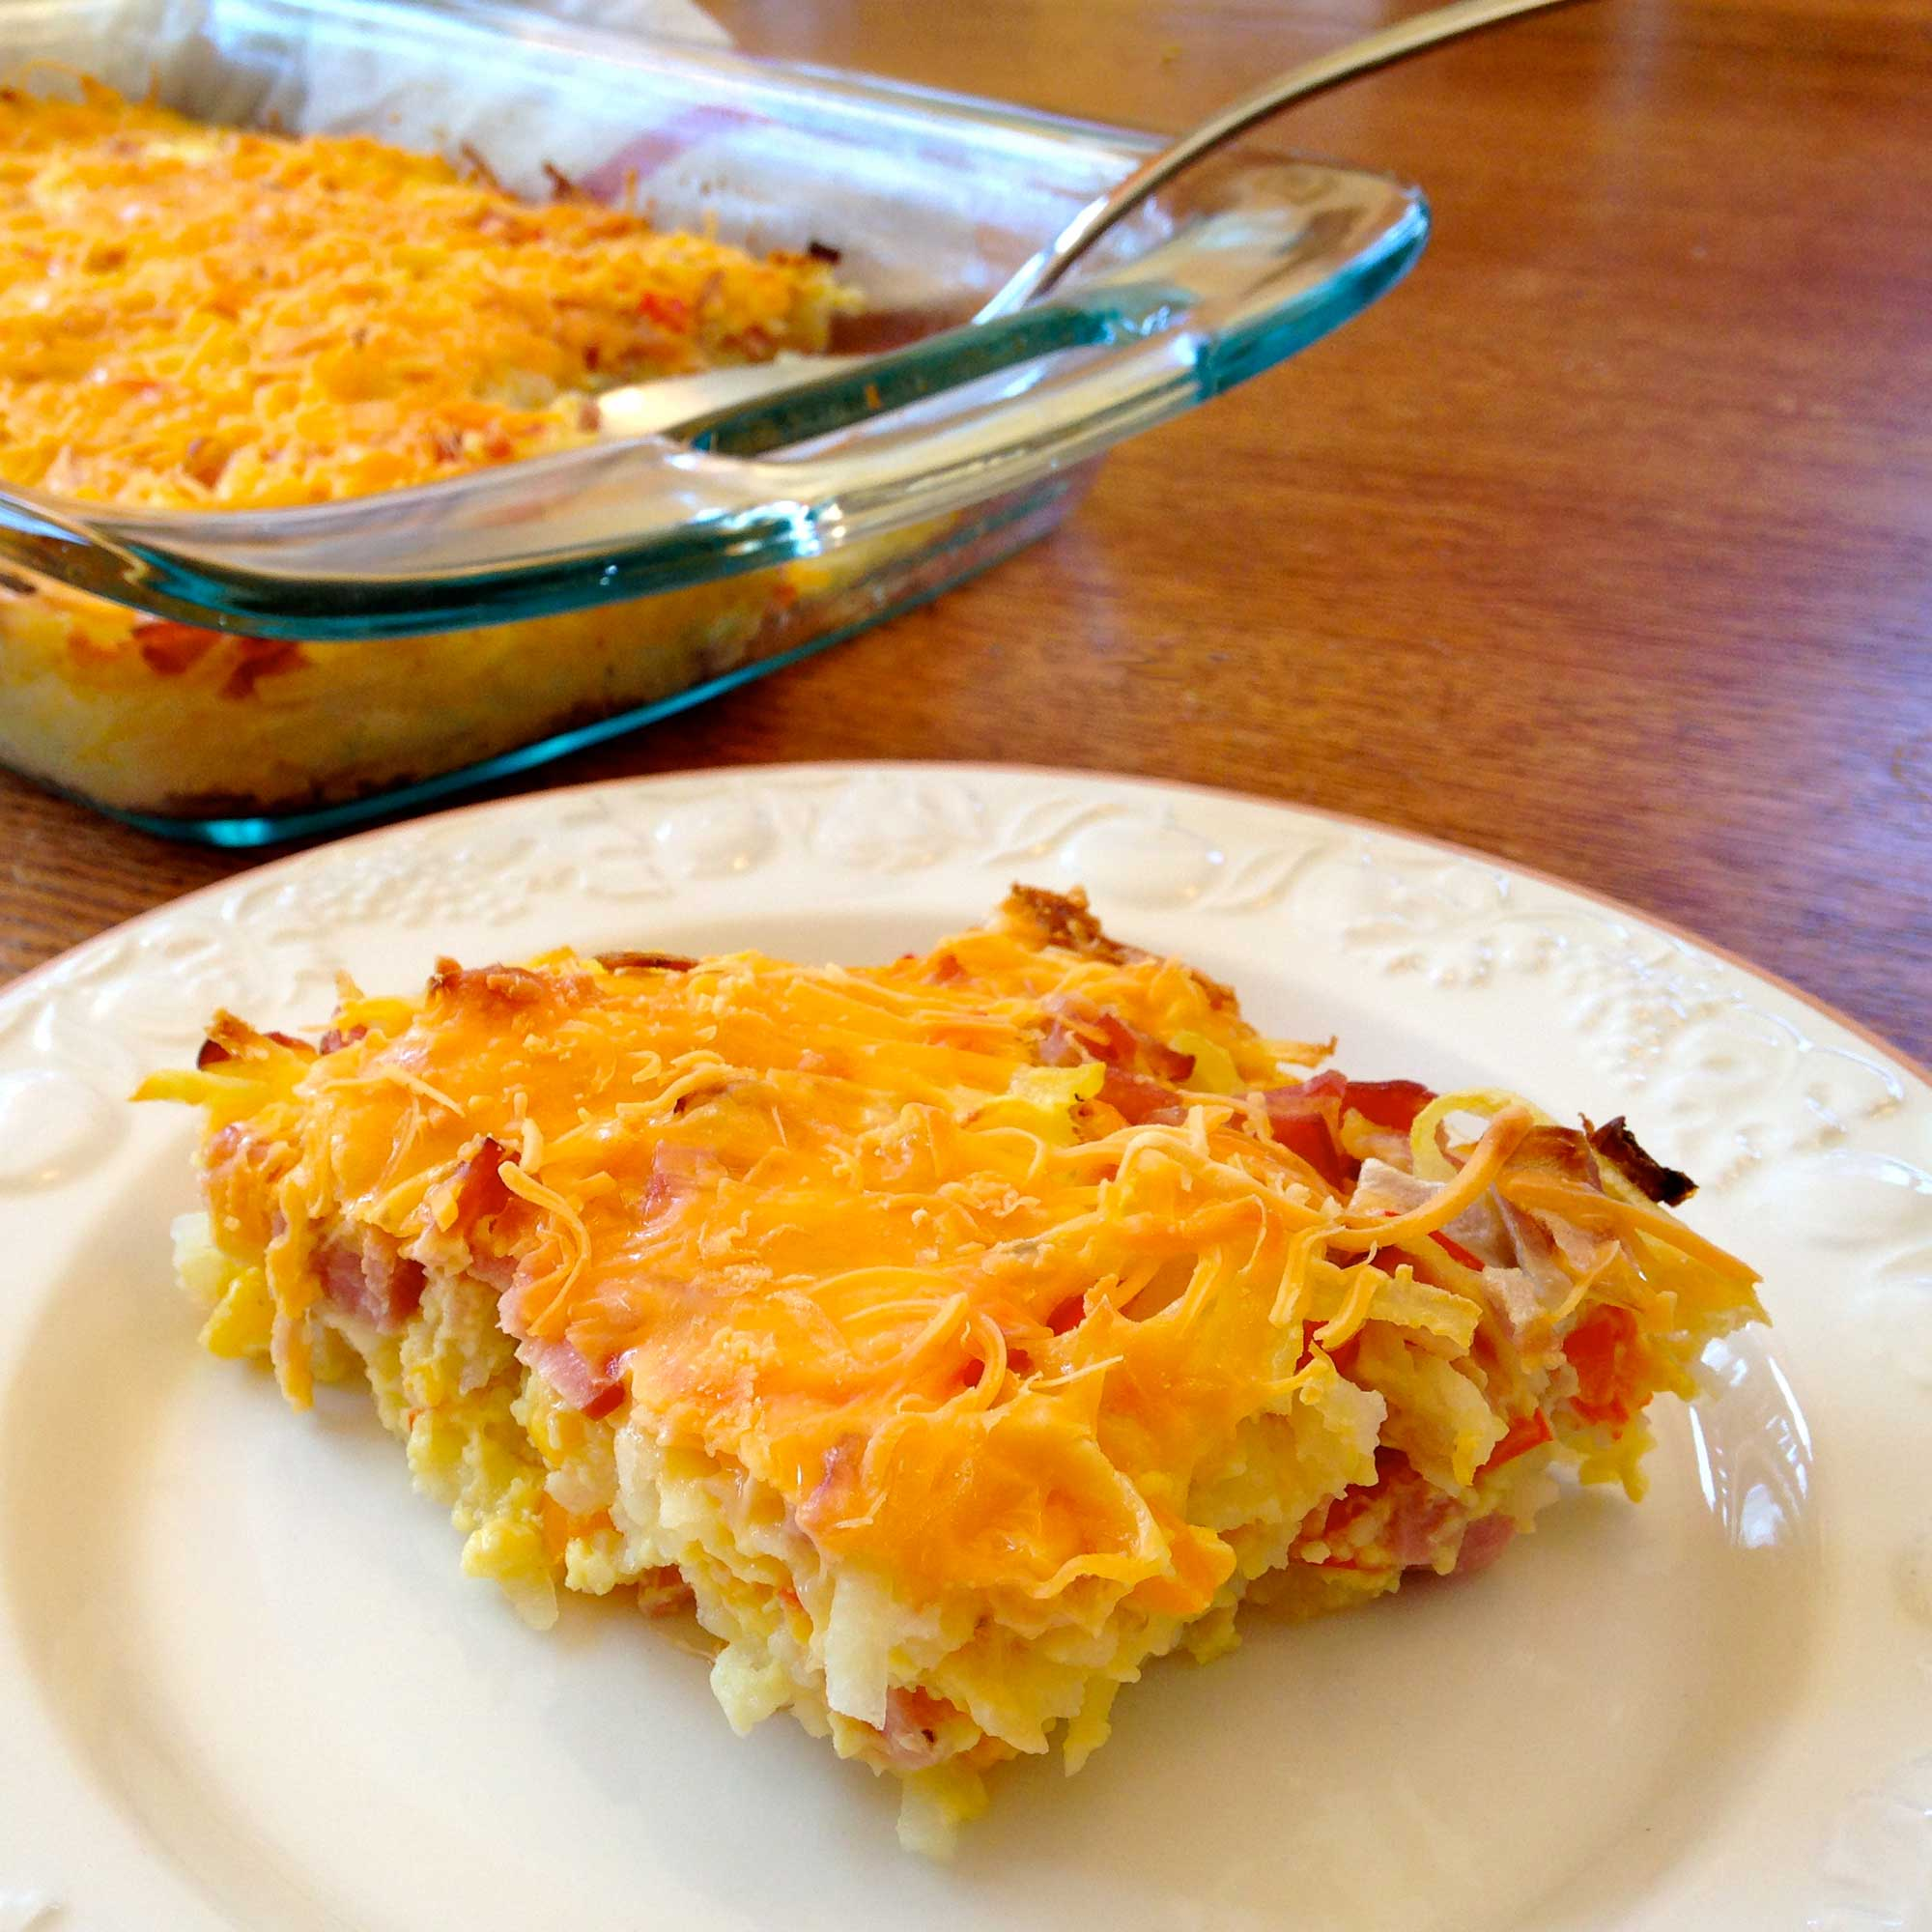 Healthy Egg, Cheese, & Hash Brown Casserole that's 100% Simply Filling on Weight Watchers   JenuineMom.com